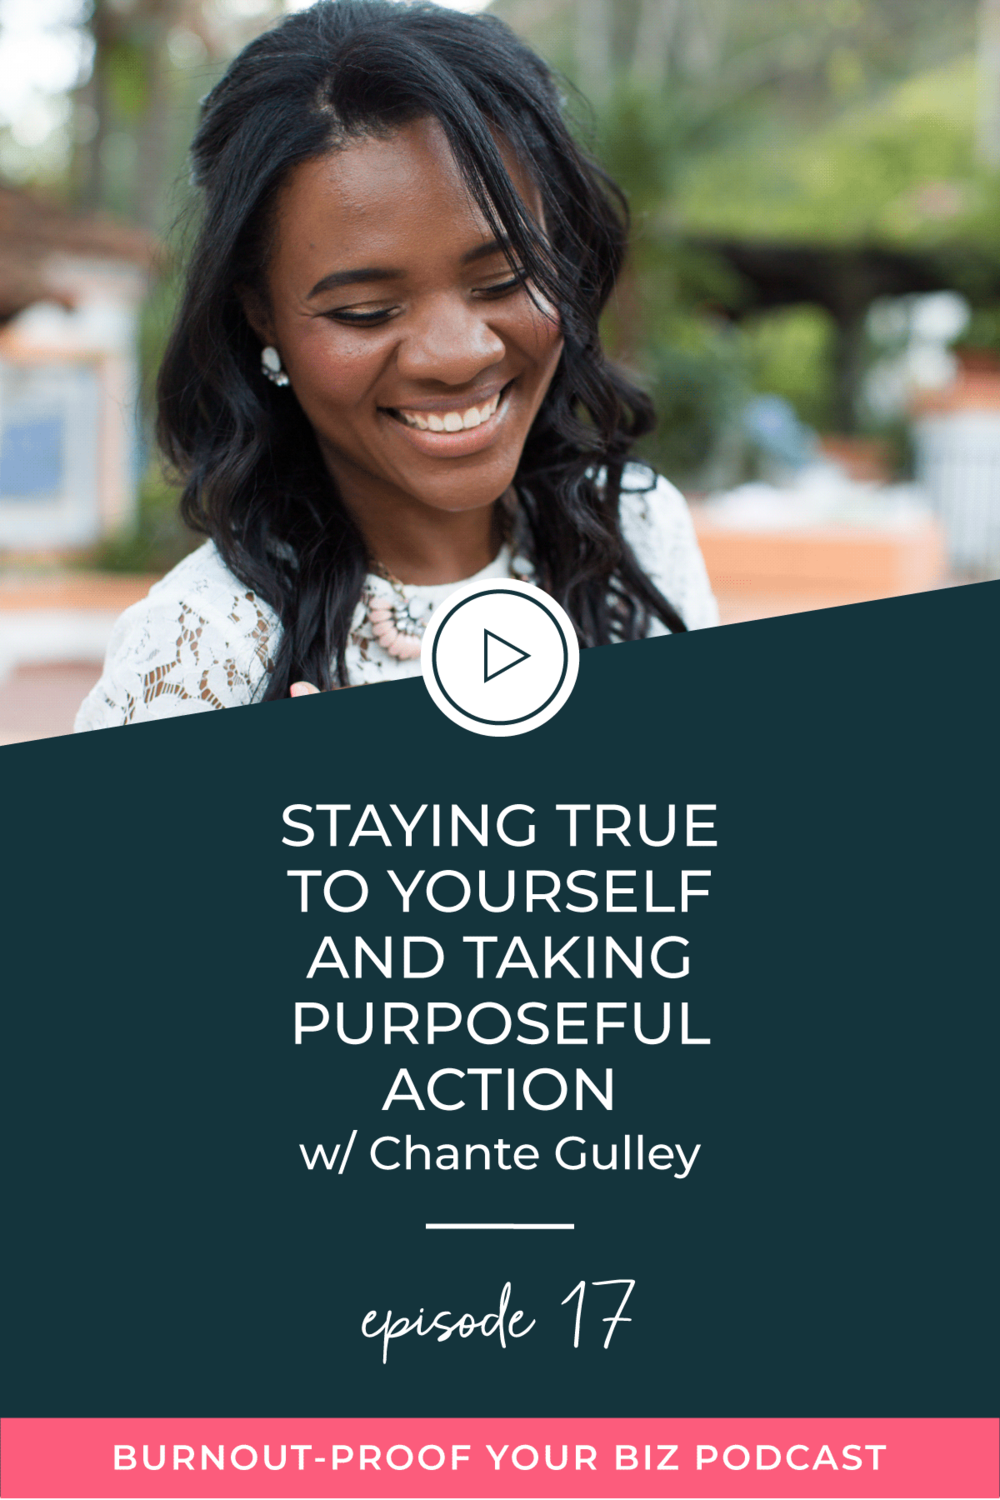 Burnout-Proof Your Biz Podcast with Chelsea B Foster | Episode 017 - Staying True to Yourself and Taking Purposeful Action with Chante Gulley | Learn how to run your biz and live your dream life on your own terms without the fear of burnout.